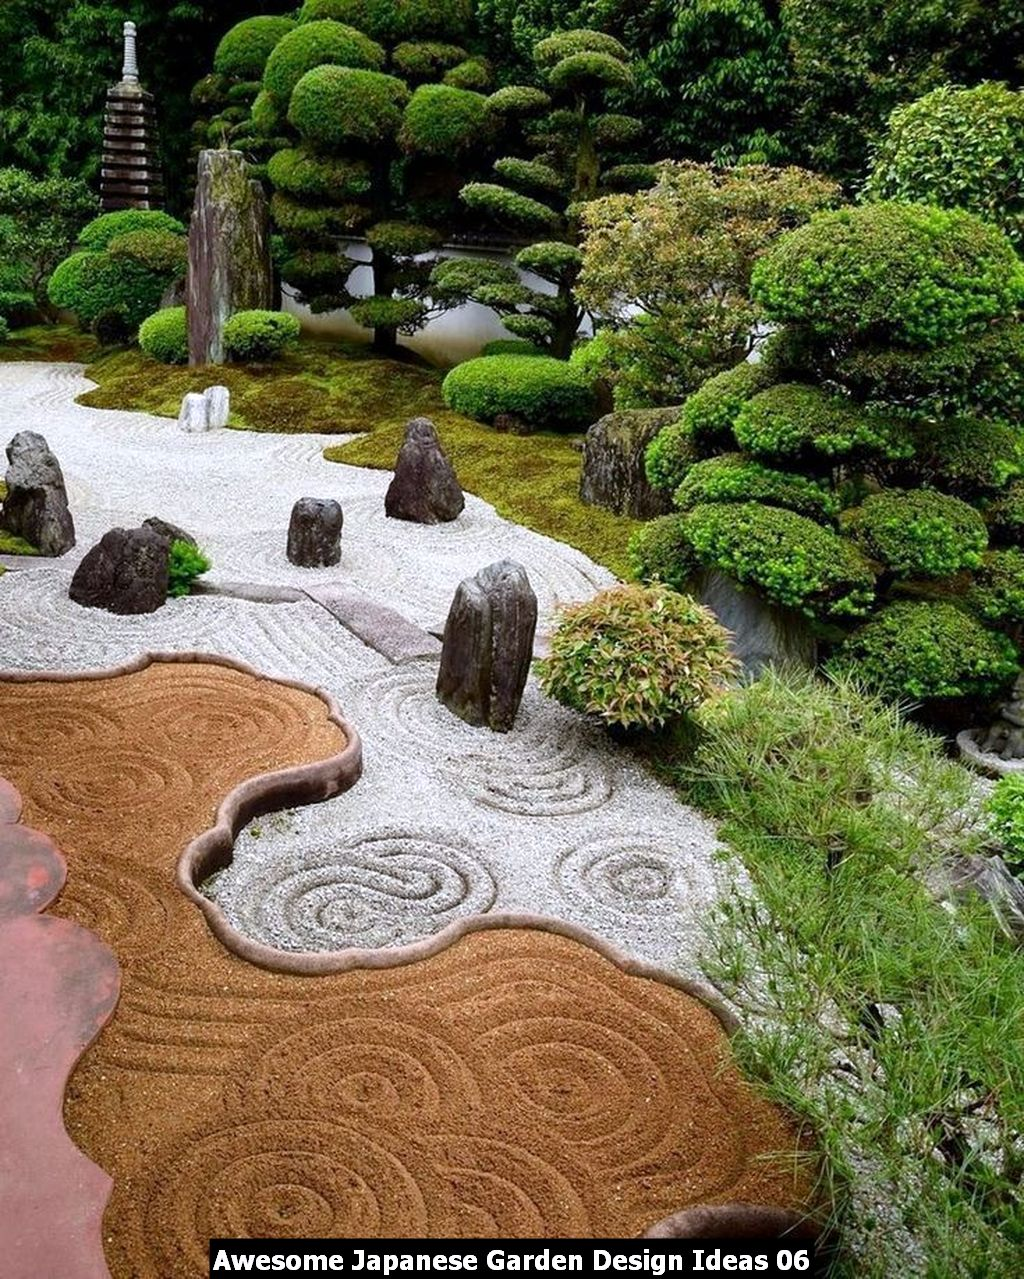 Awesome Japanese Garden Design Ideas 06